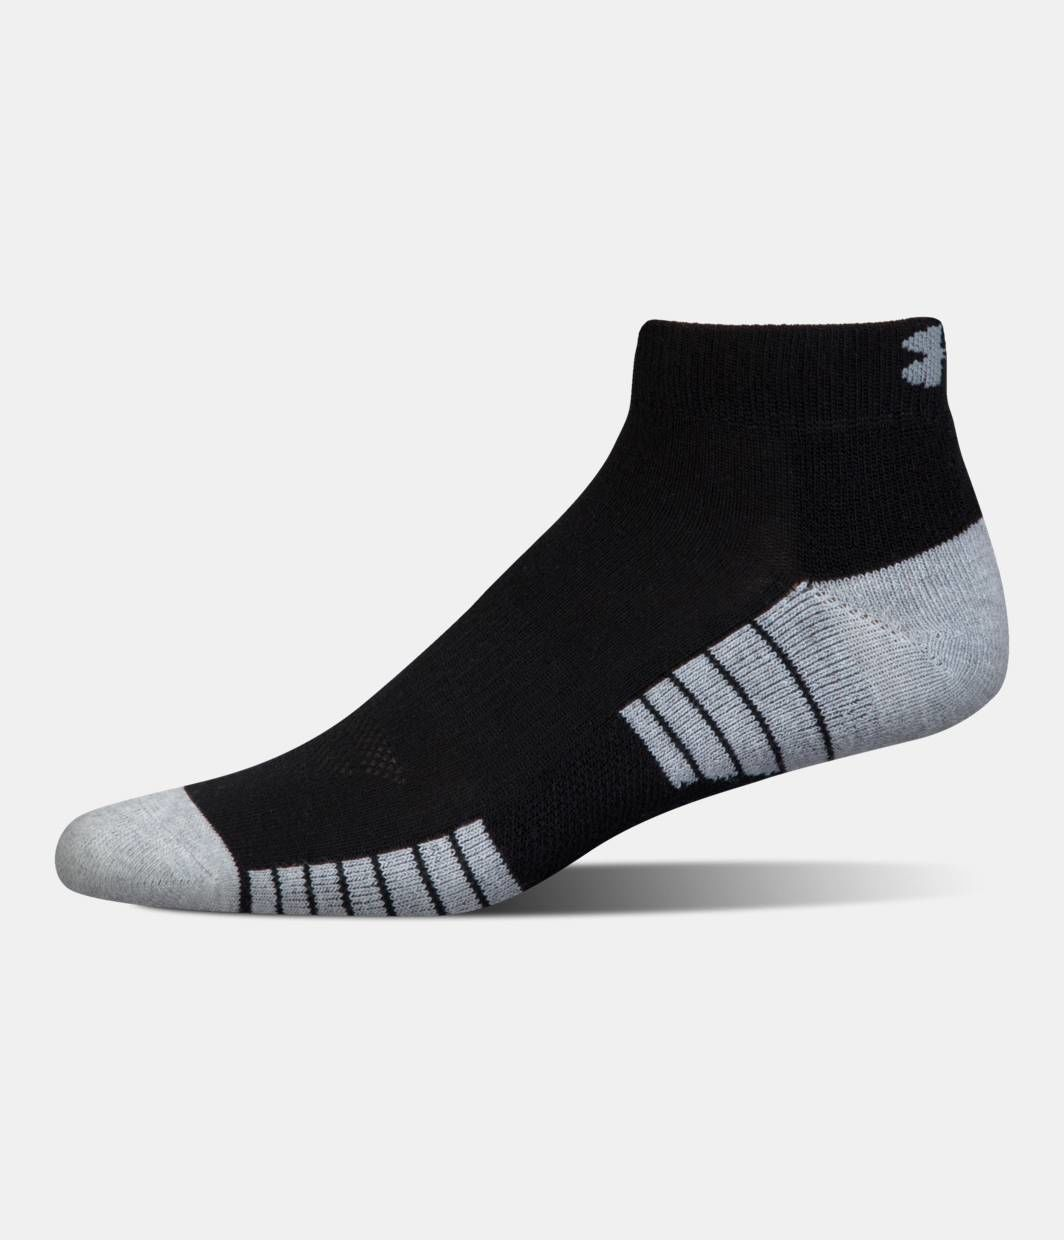 Under Armour Heatgear Tech Locut 3pk ponožky